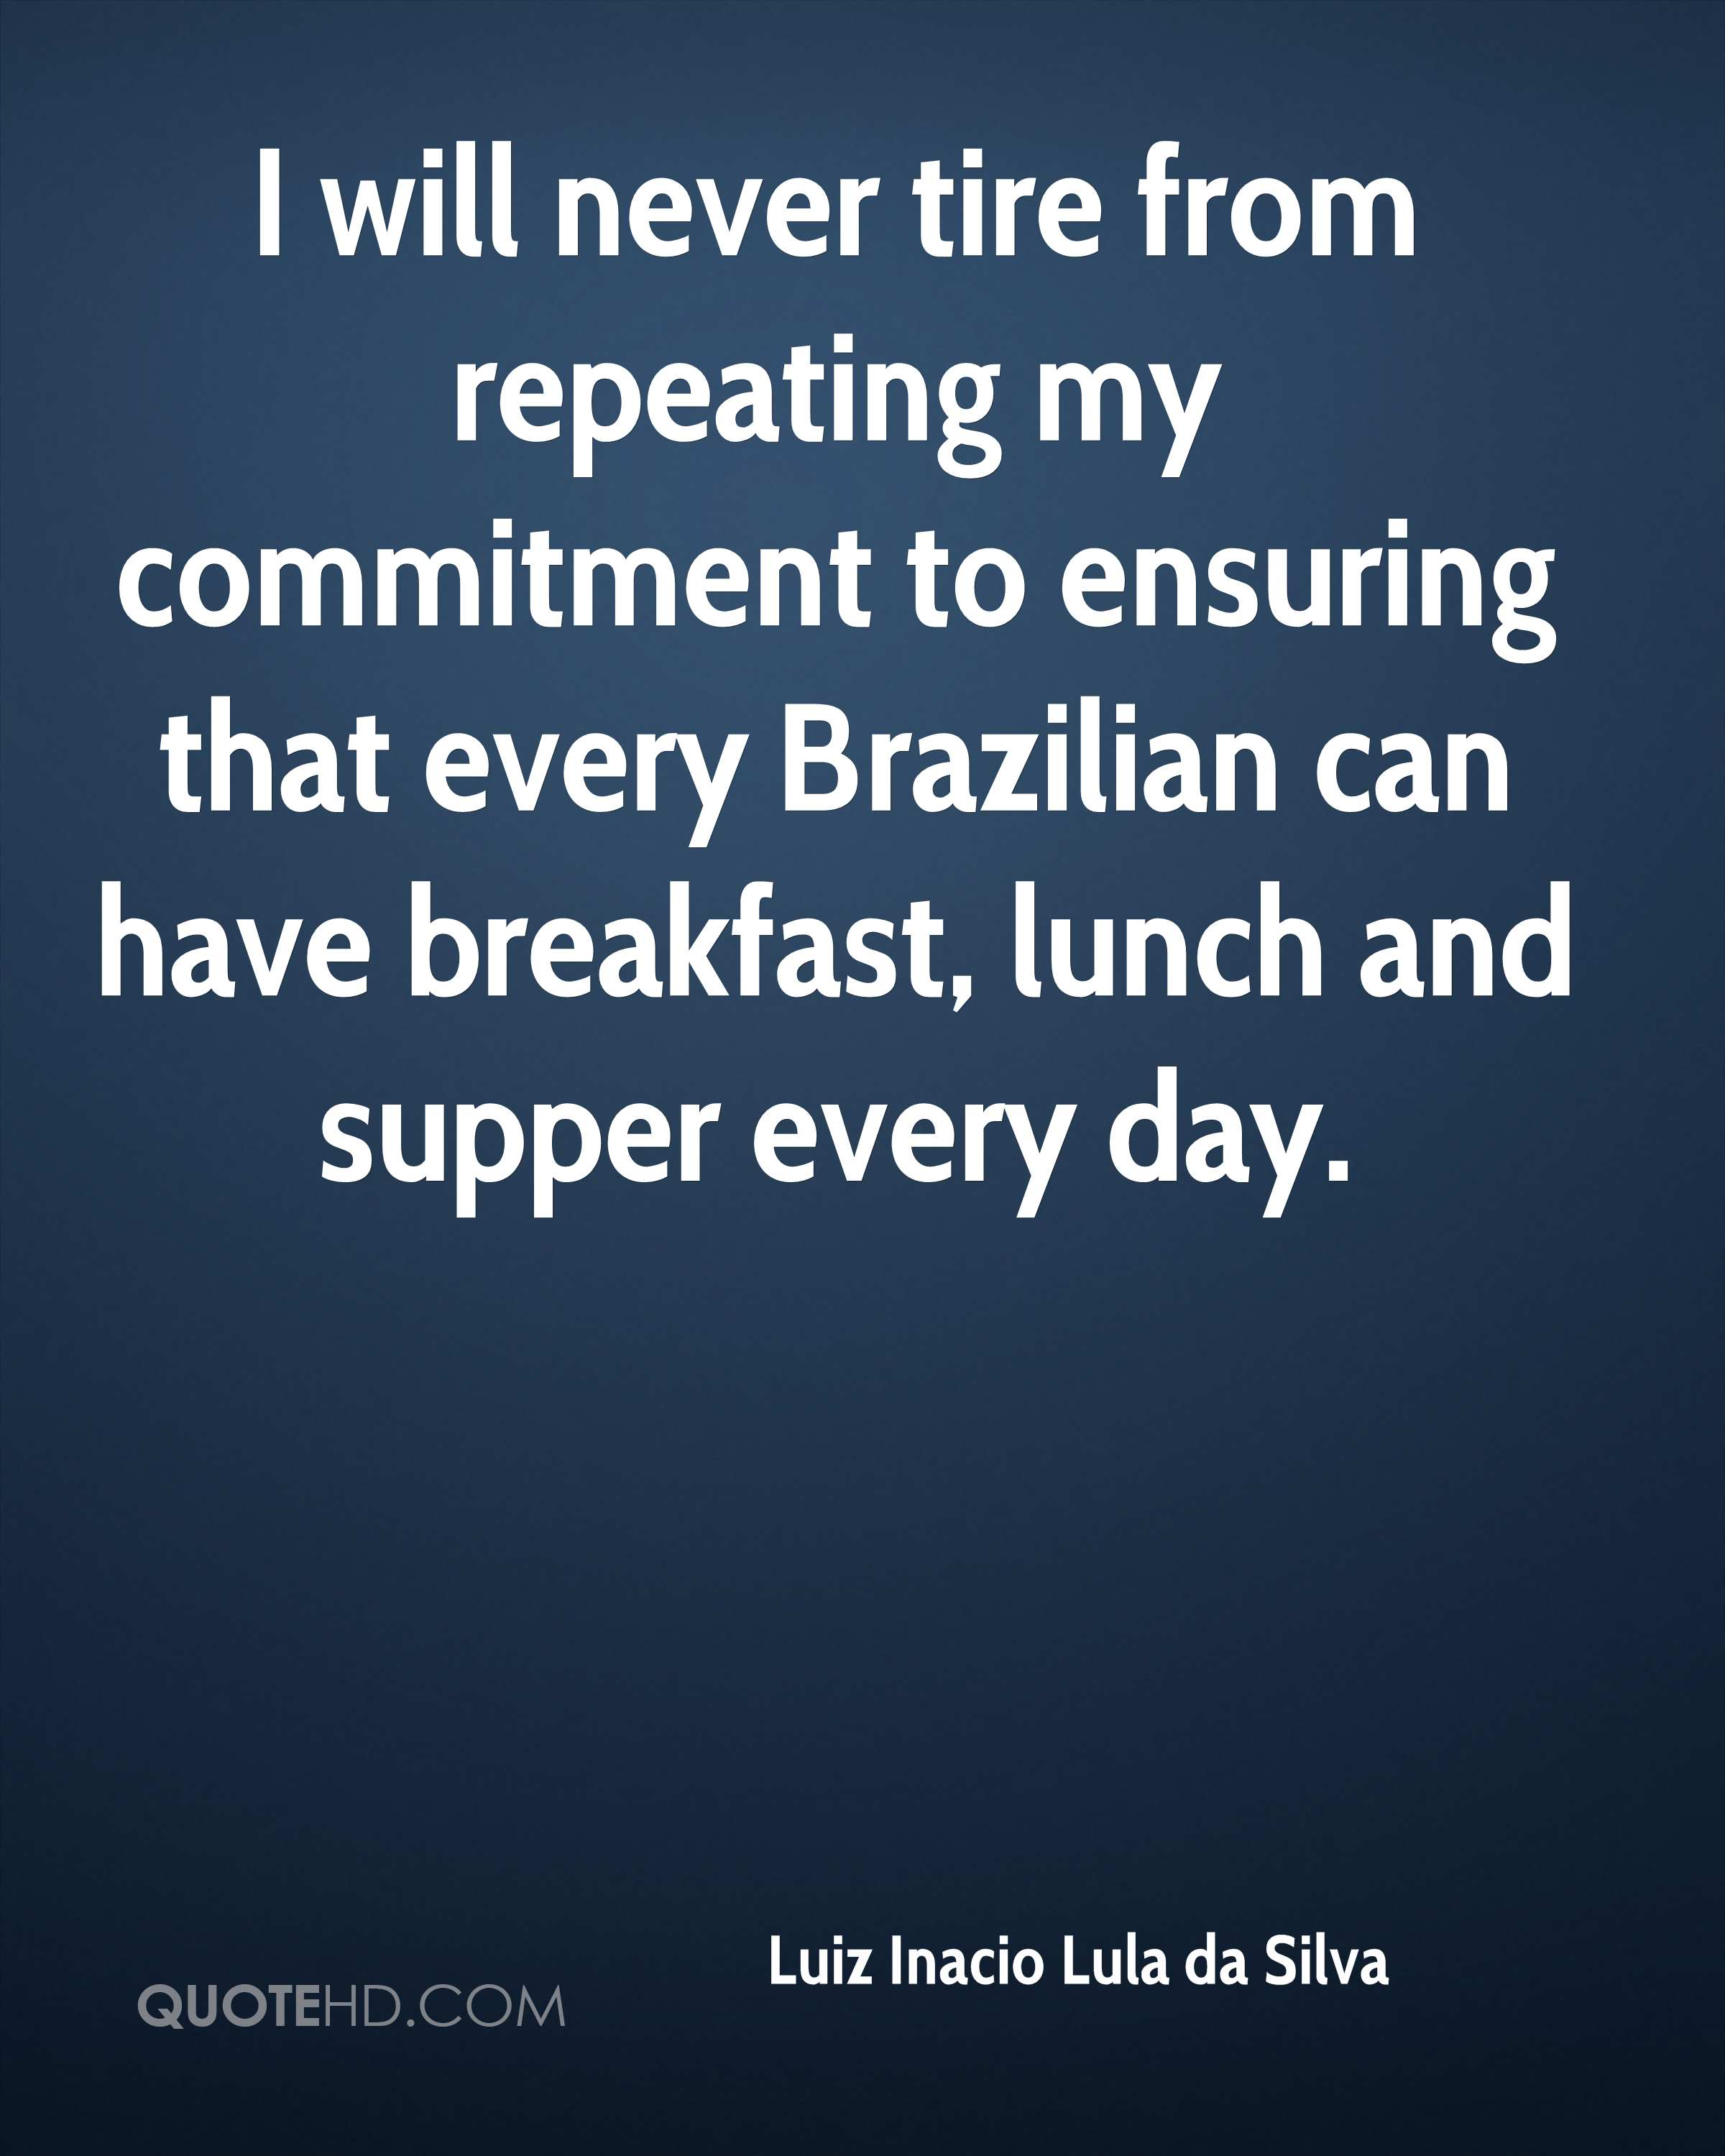 I will never tire from repeating my commitment to ensuring that every Brazilian can have breakfast, lunch and supper every day.